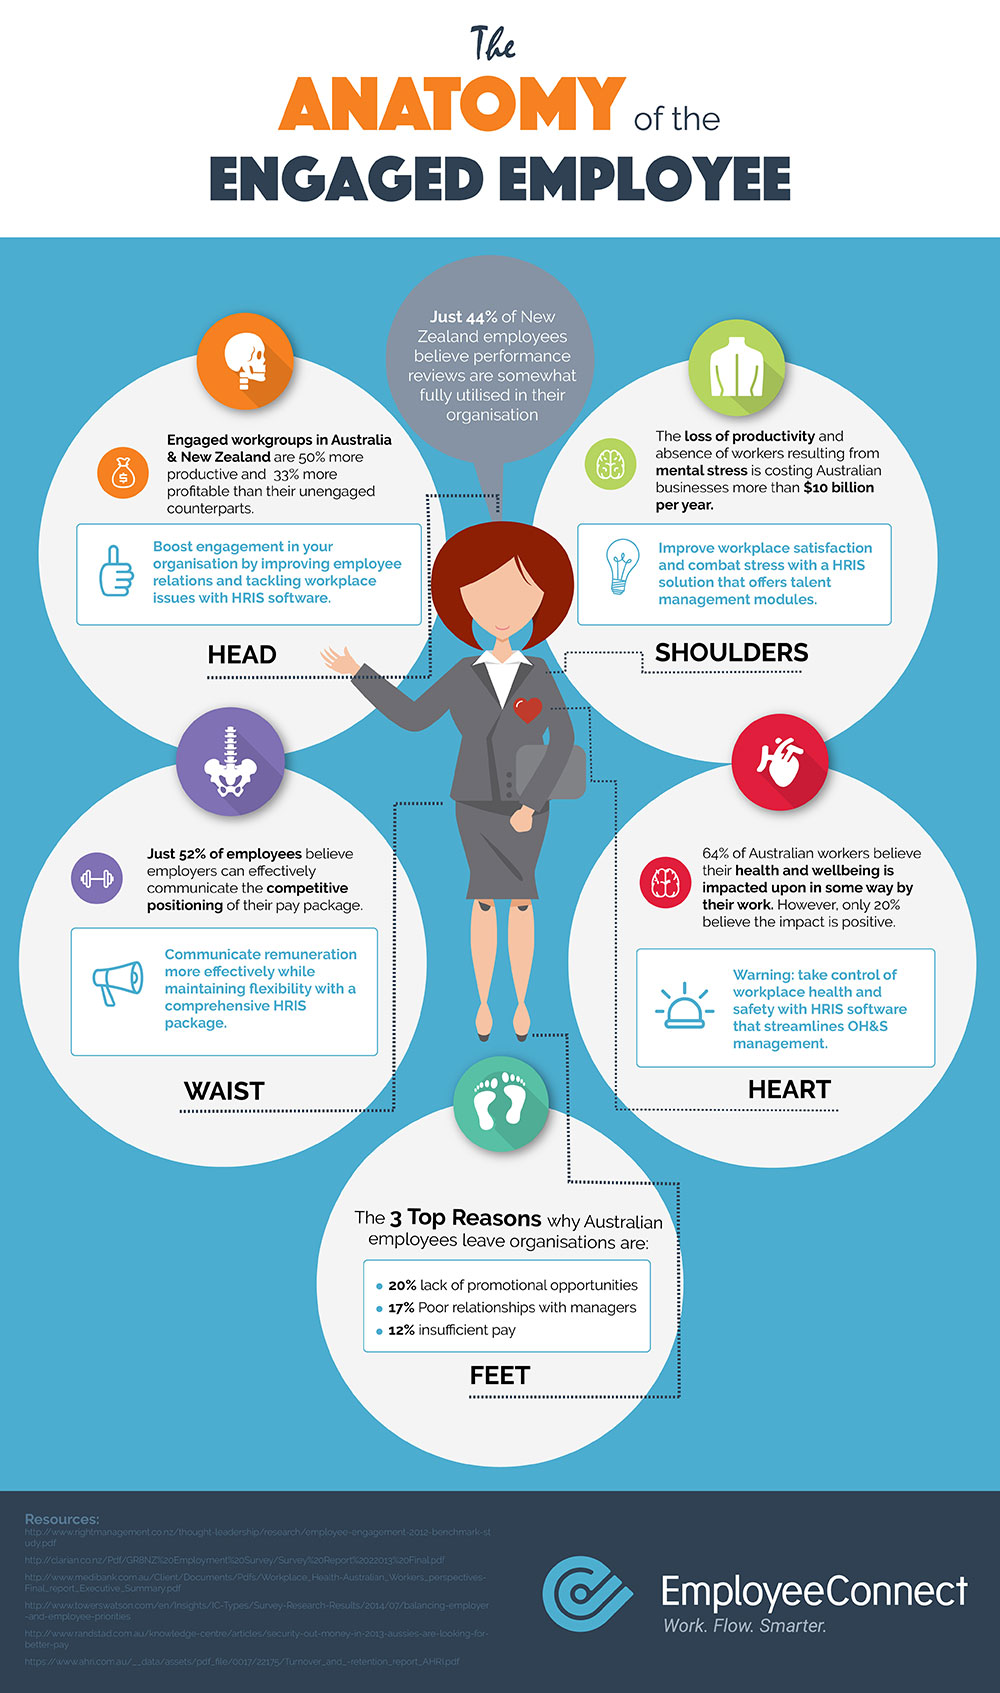 The Anatomy of the Engaged Employee